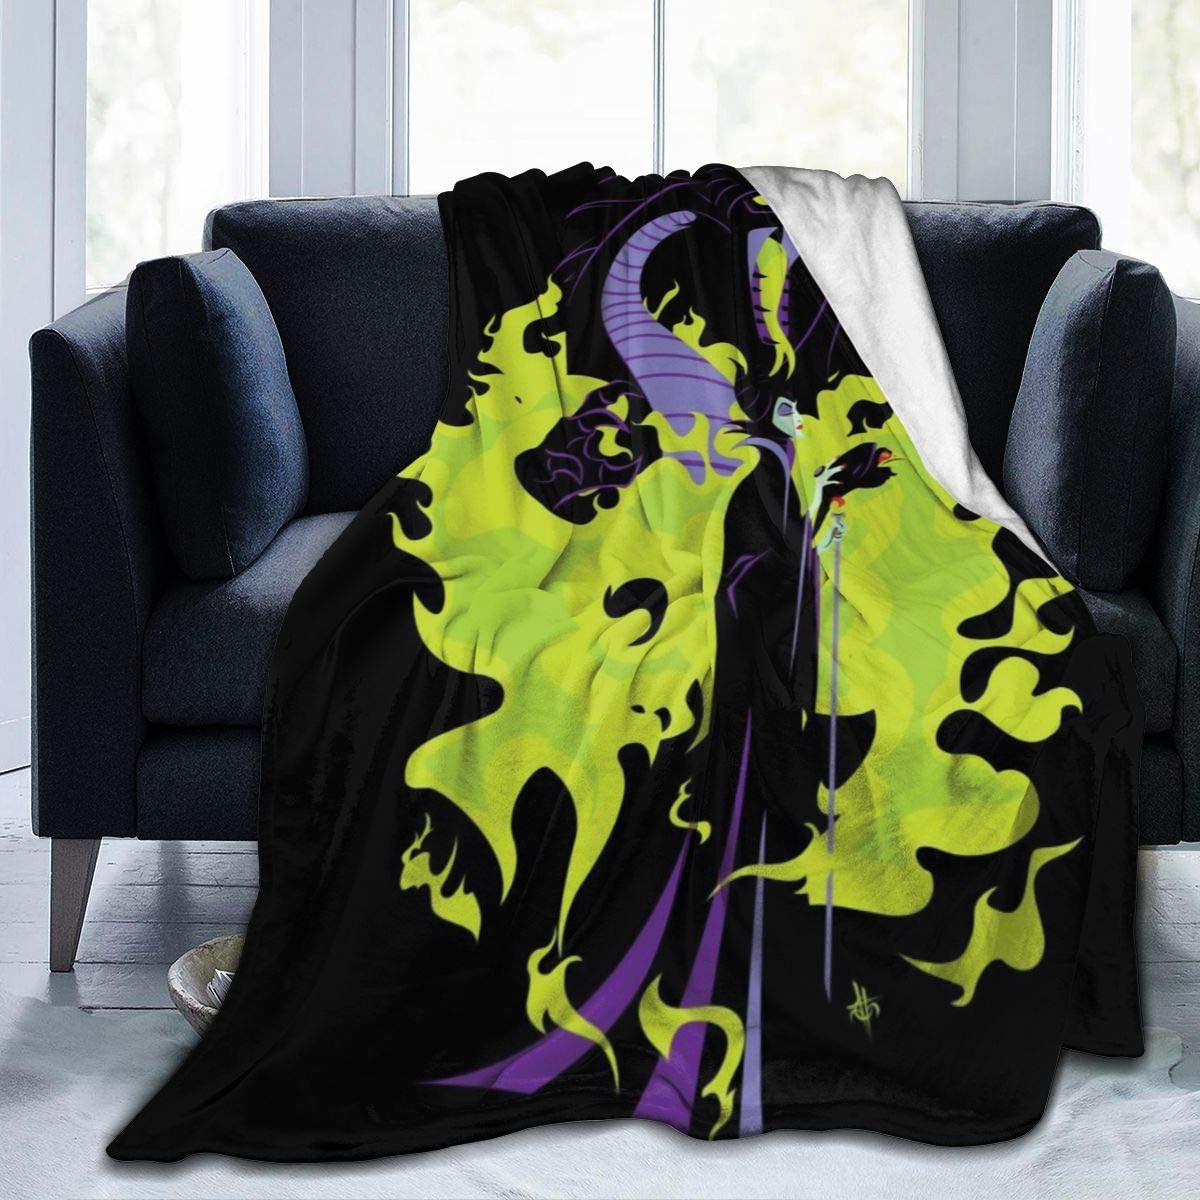 TECHSOURCE Male-ficent Mist-RESS of High quality Mic Ultra-Soft Sale Special Price Blanket Ev-il